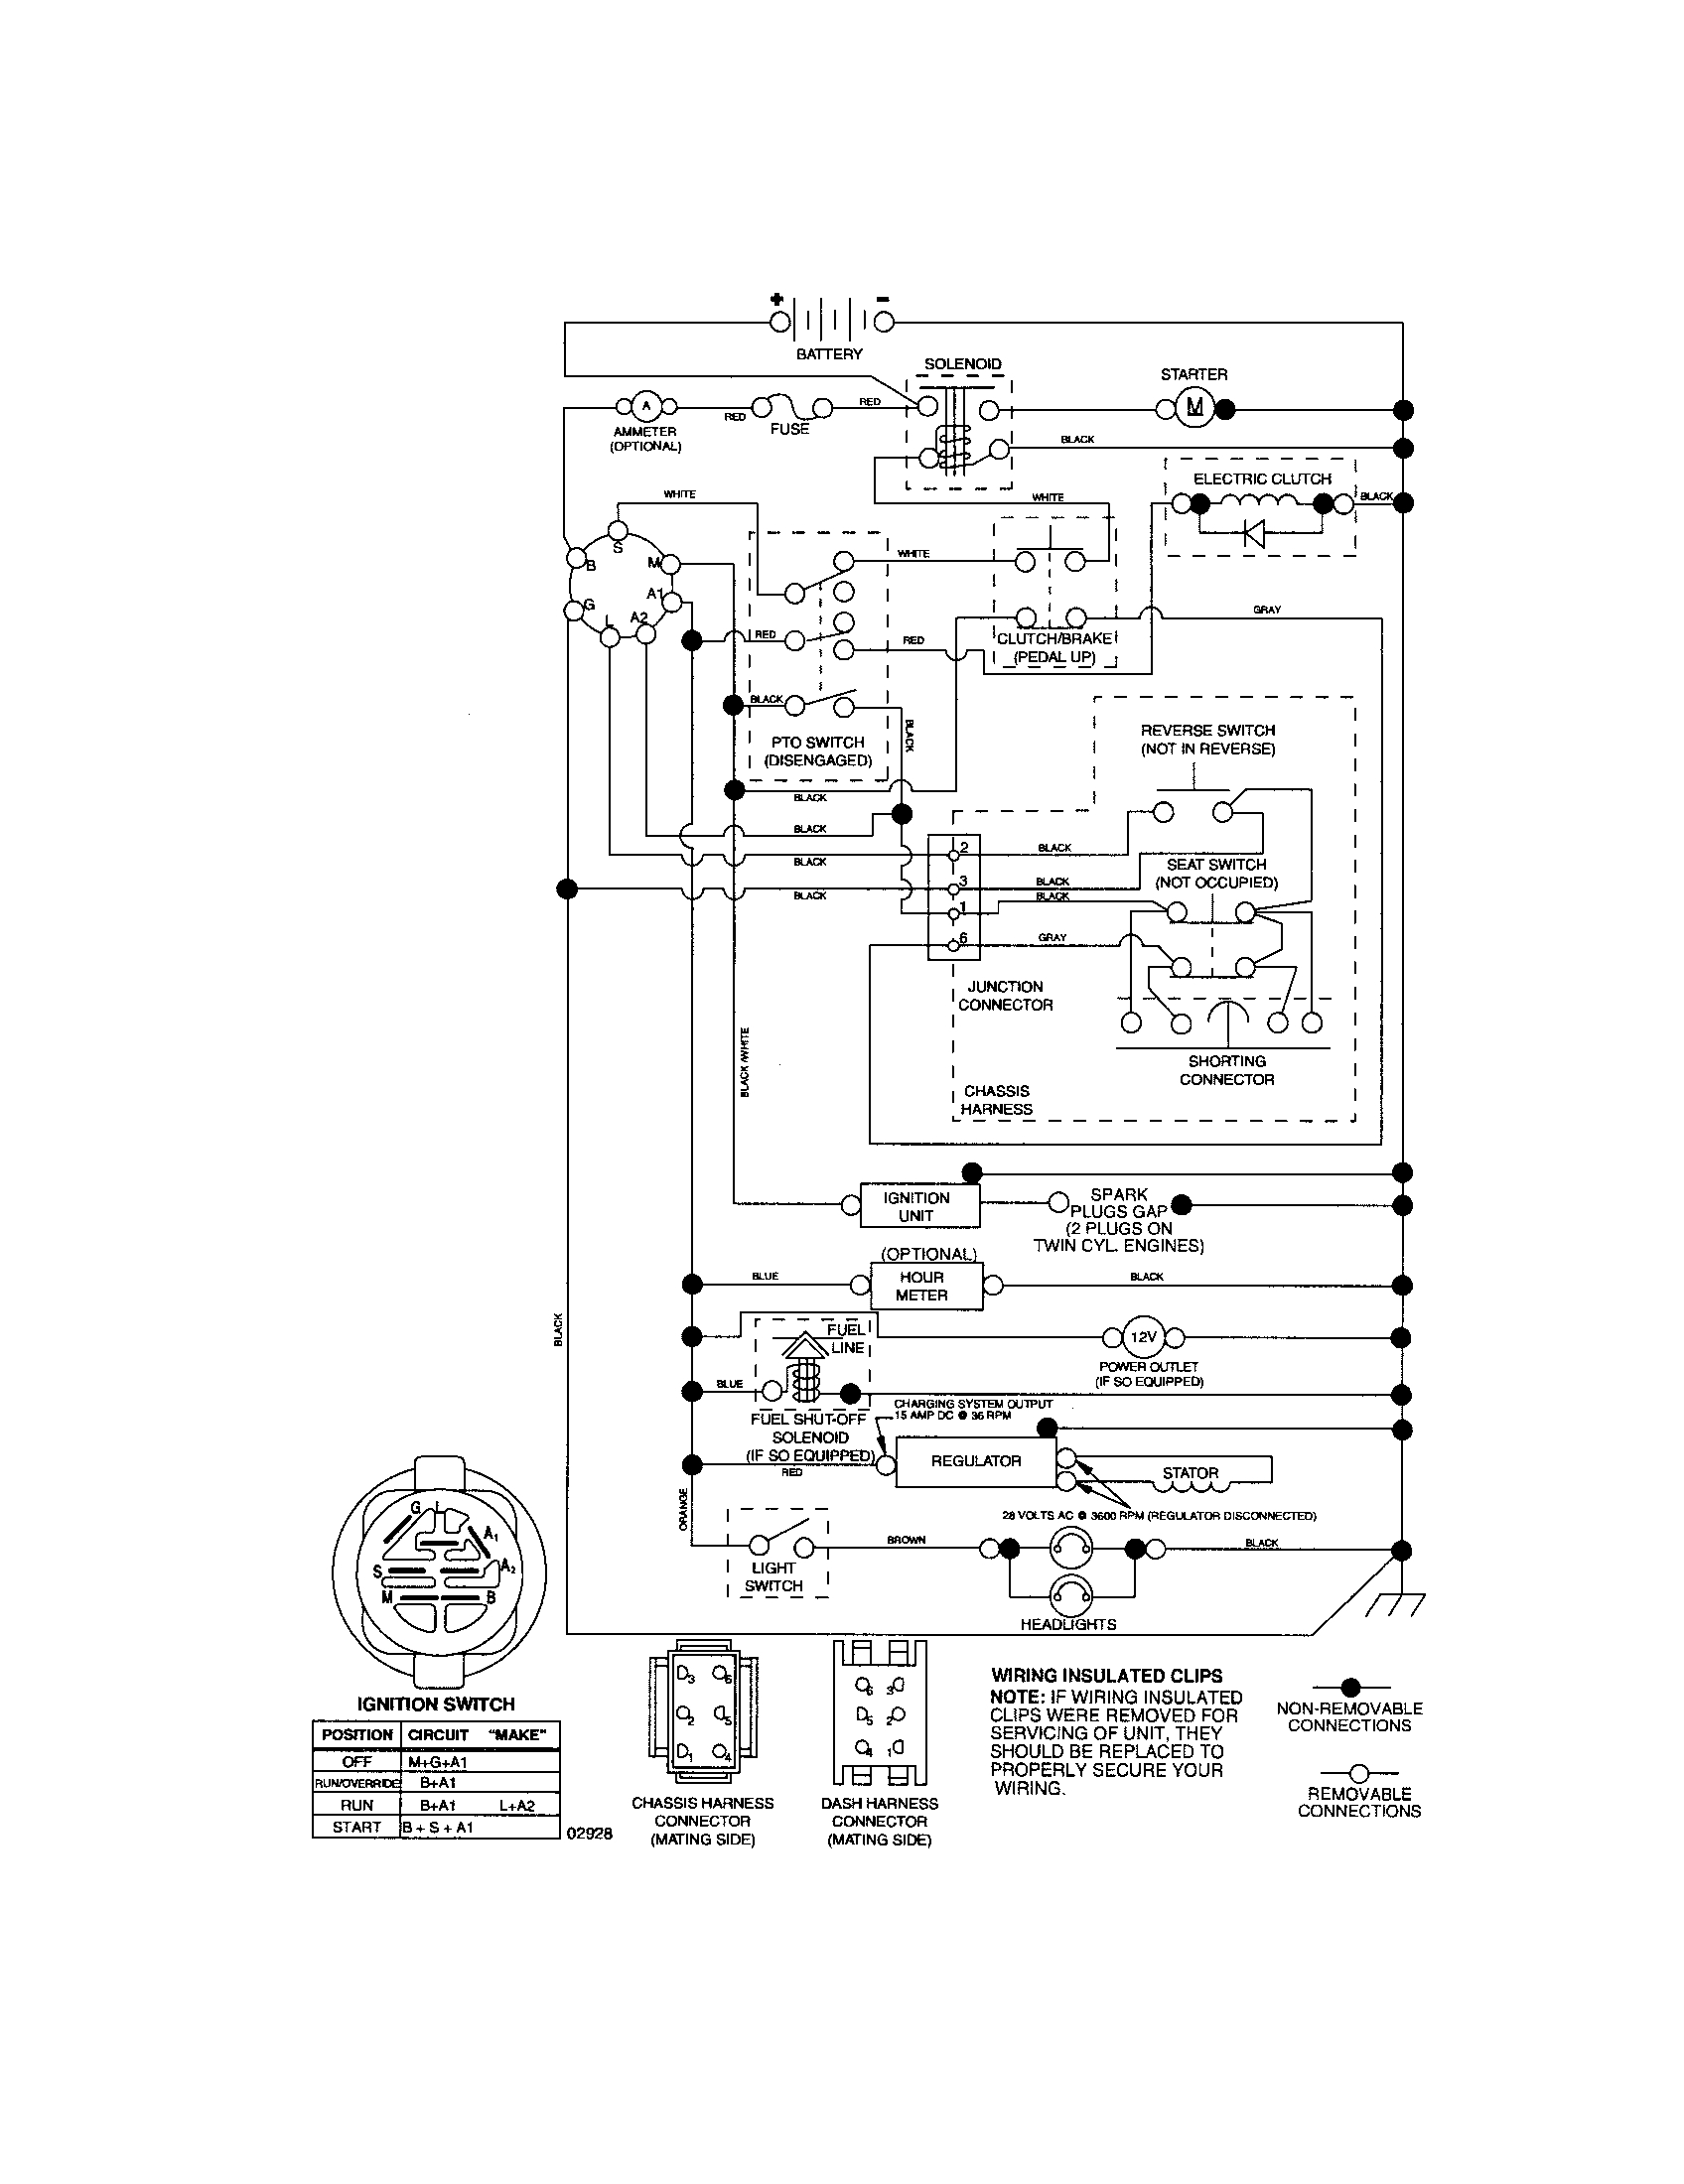 Huskee Lawn Mower Parts Diagram Wiring Diagram For A Craftsman Riding Mower Get Free Image About